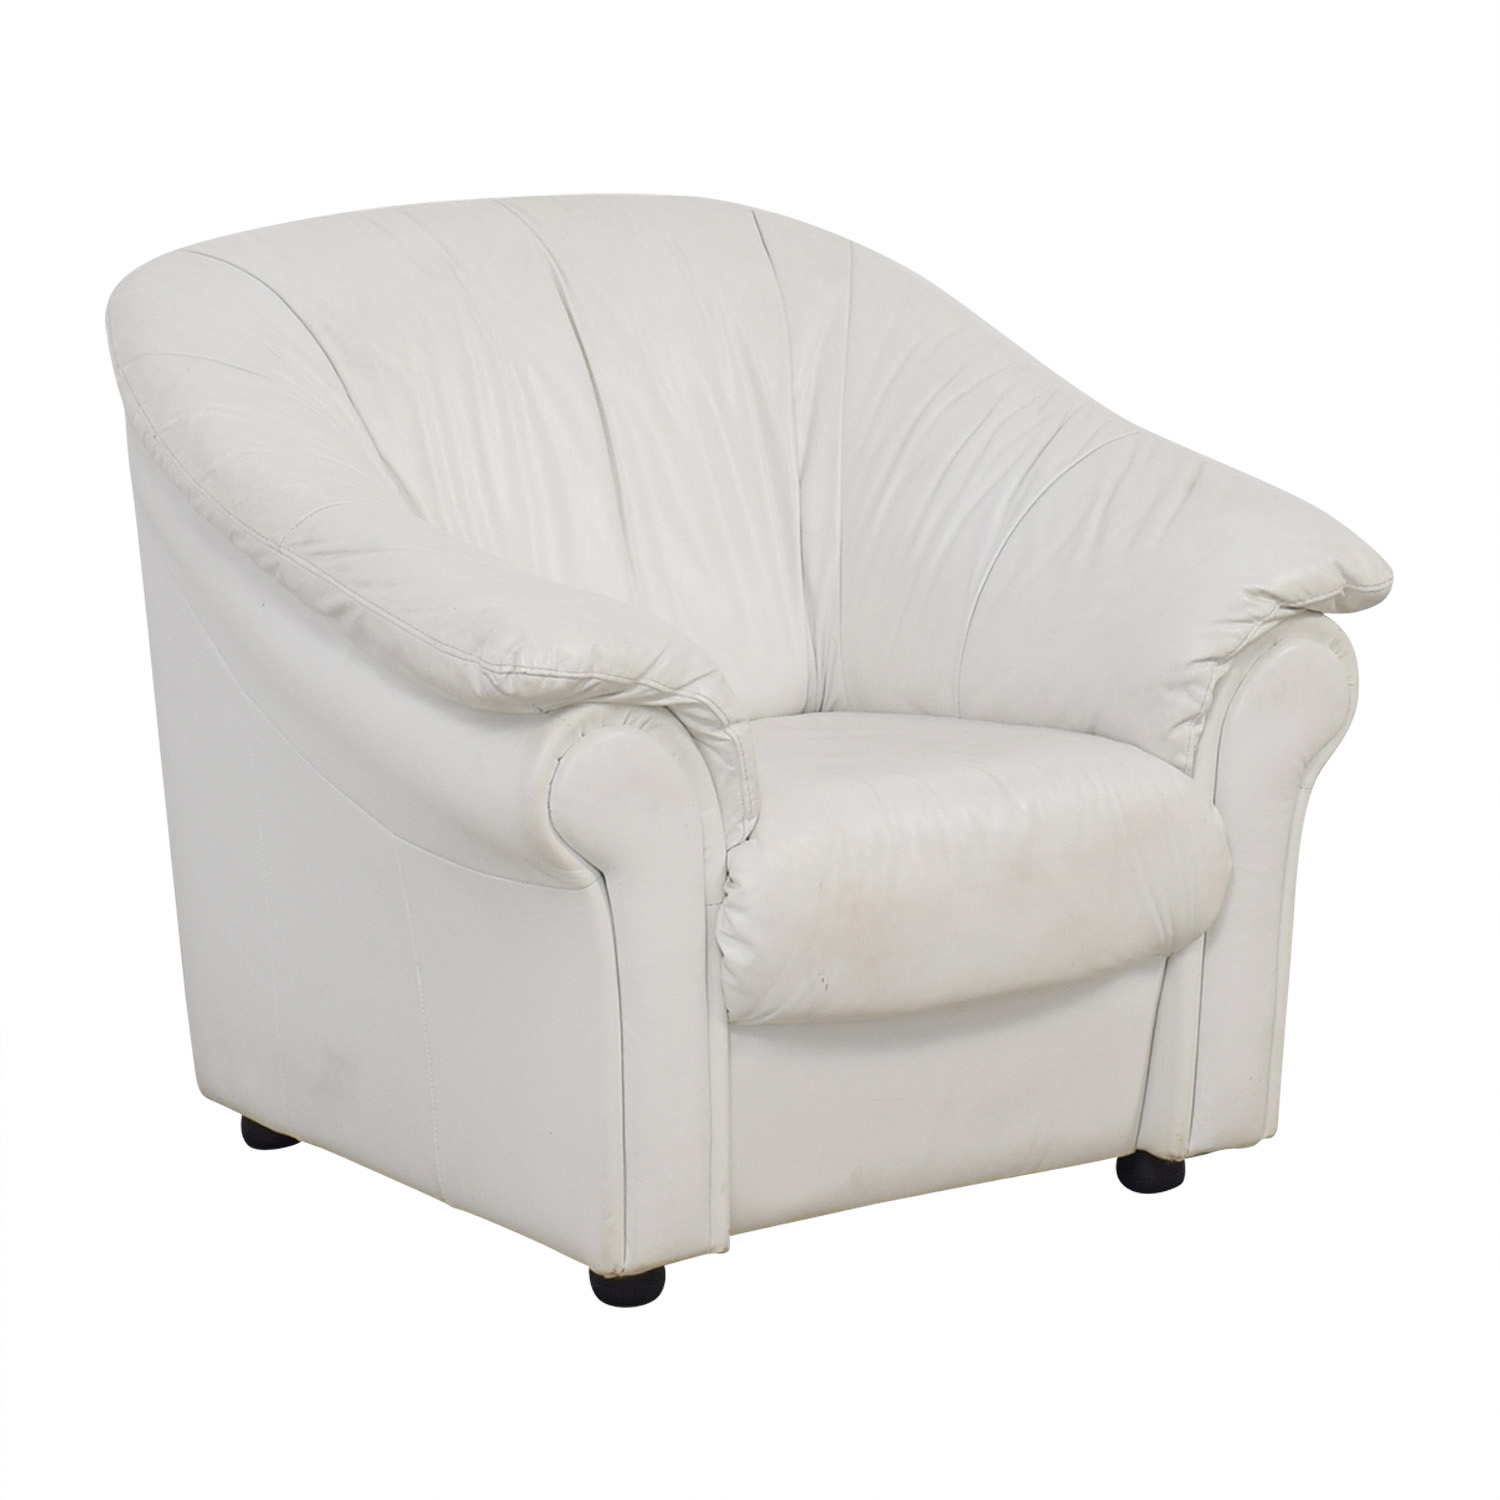 West Elm West Elm White Leather Armchair / Chairs